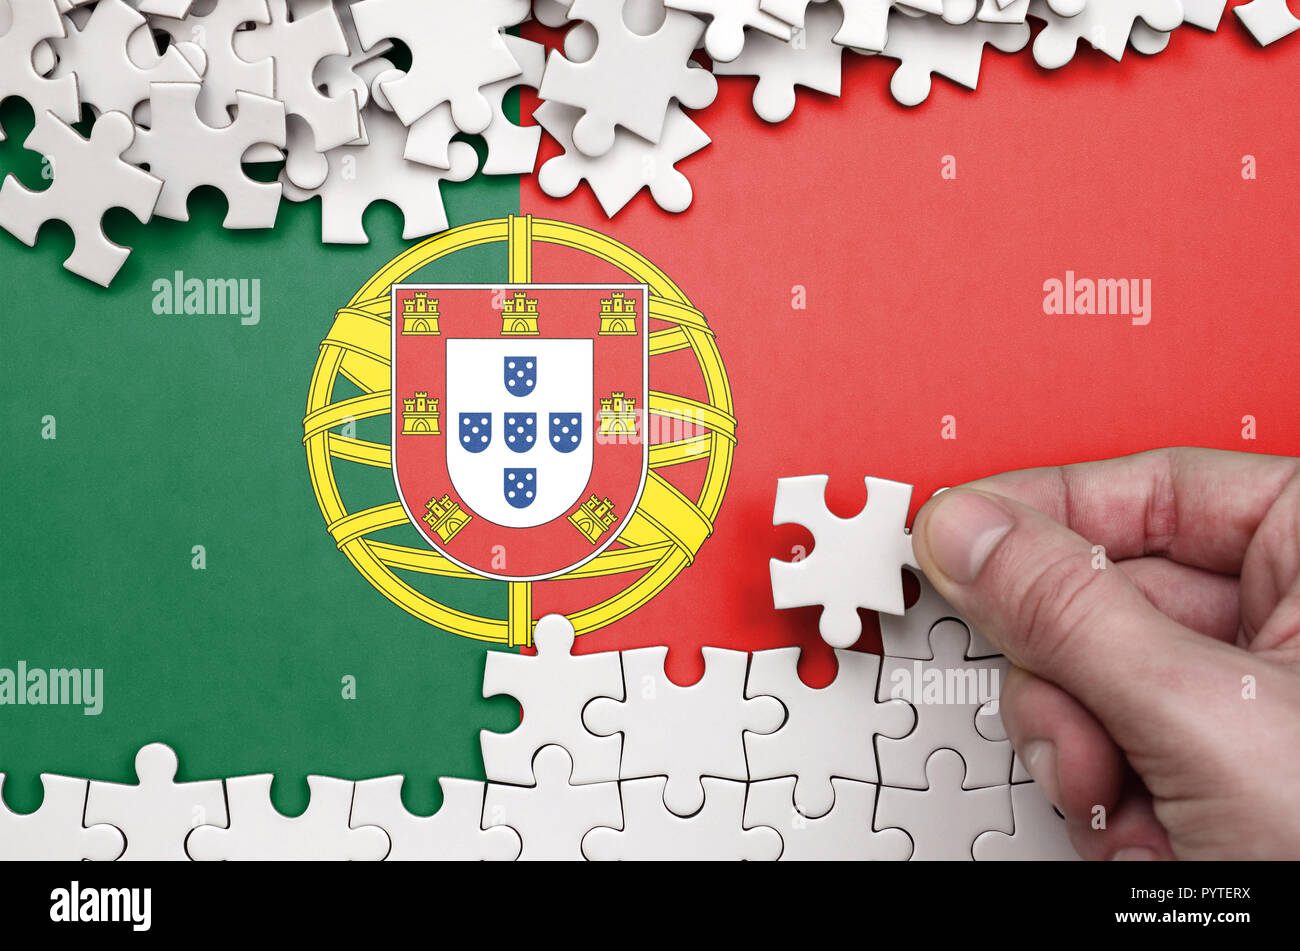 Portugal flag  is depicted on a table on which the human hand folds a puzzle of white color. - Stock Image